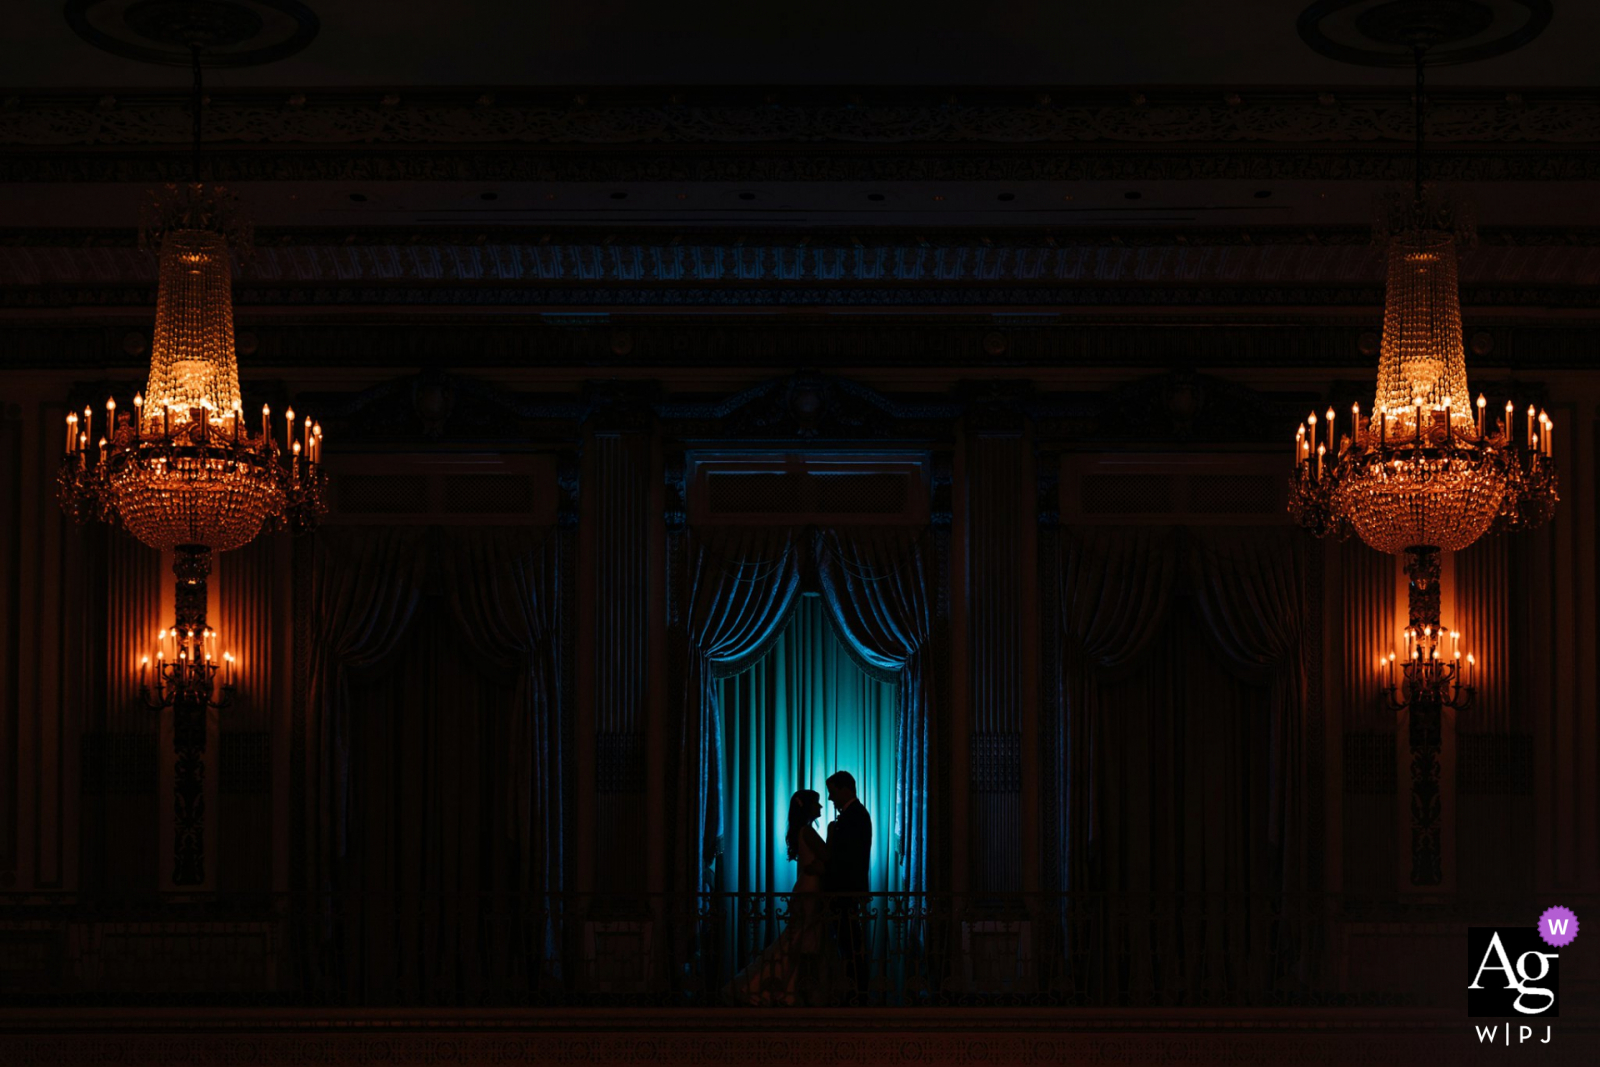 Palmer House Hotel, Chicago creative lit silhouette wedding portrait in great light